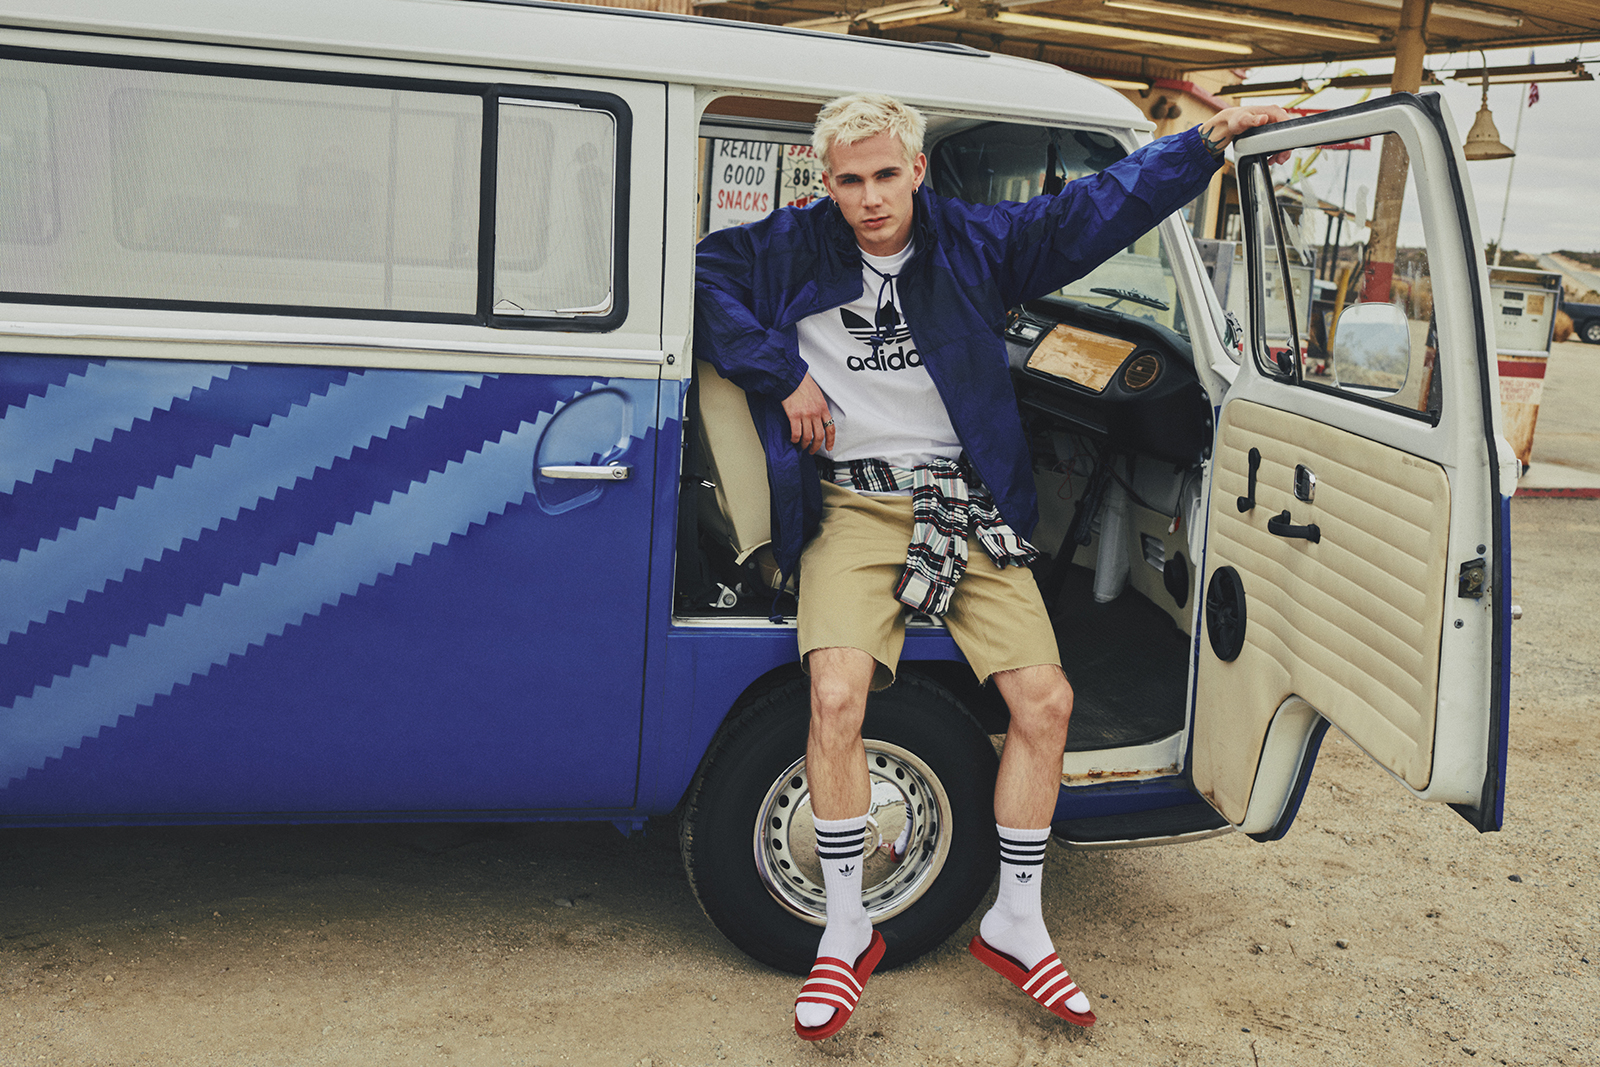 A guy wearing a blue windbreaker, adidas tee, socks, and slides leans in the open door on the passenger side of an Originals themed Volkswagen bus parked in a desert gas station.